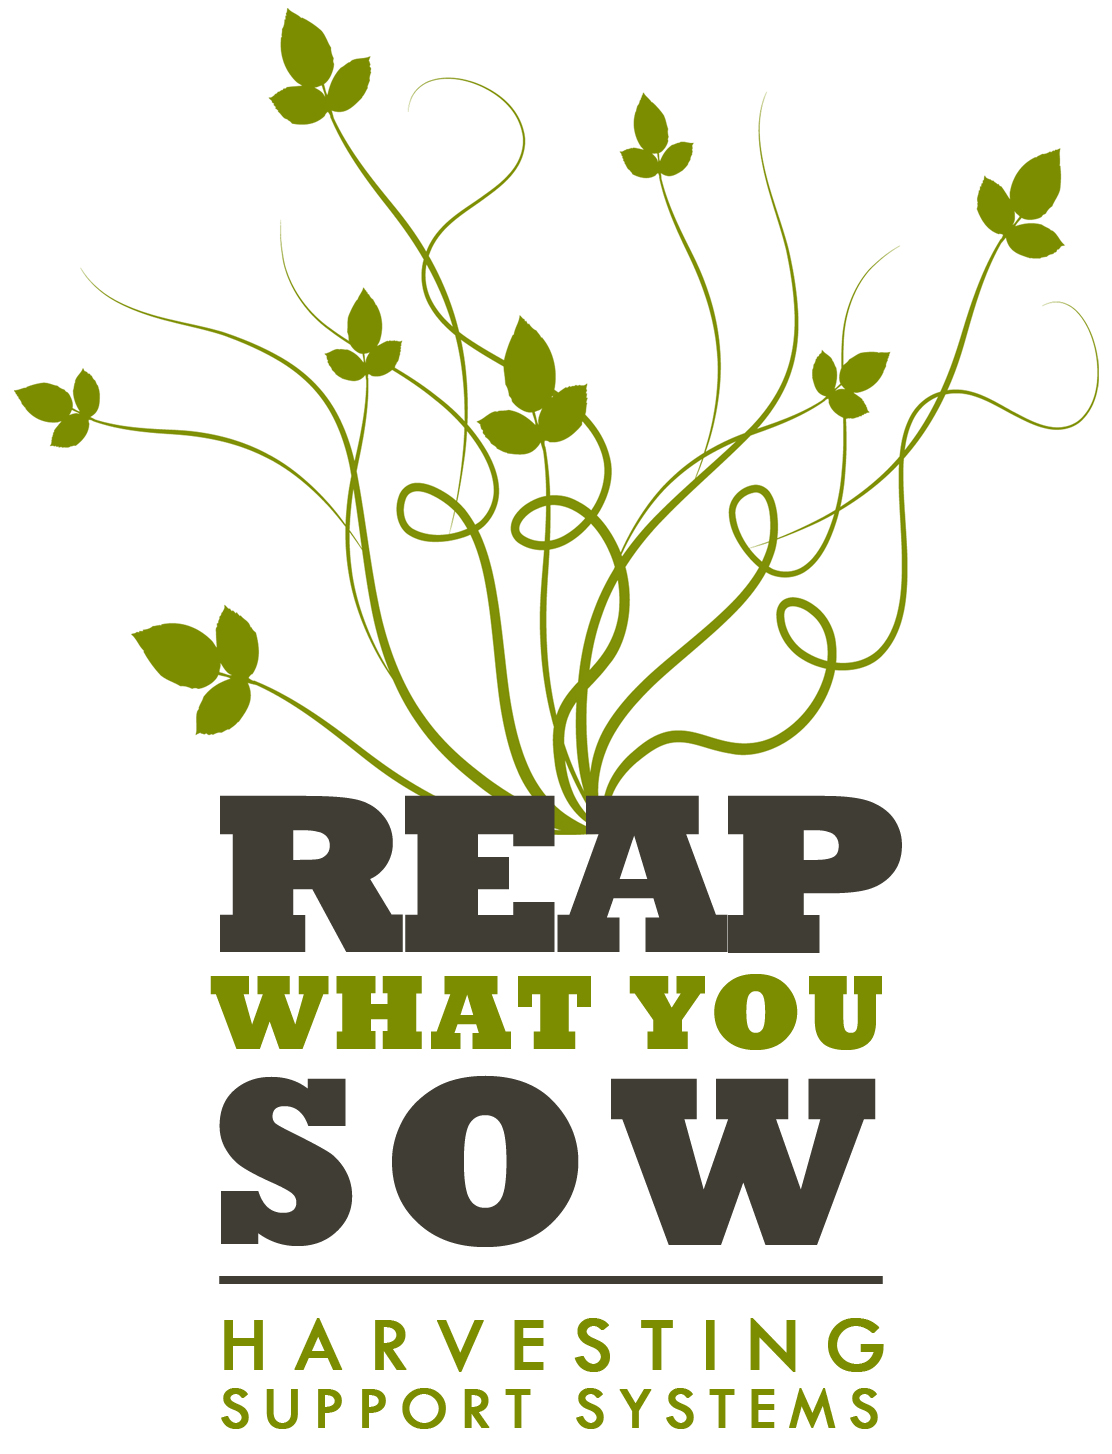 what you sow is what you reap essay